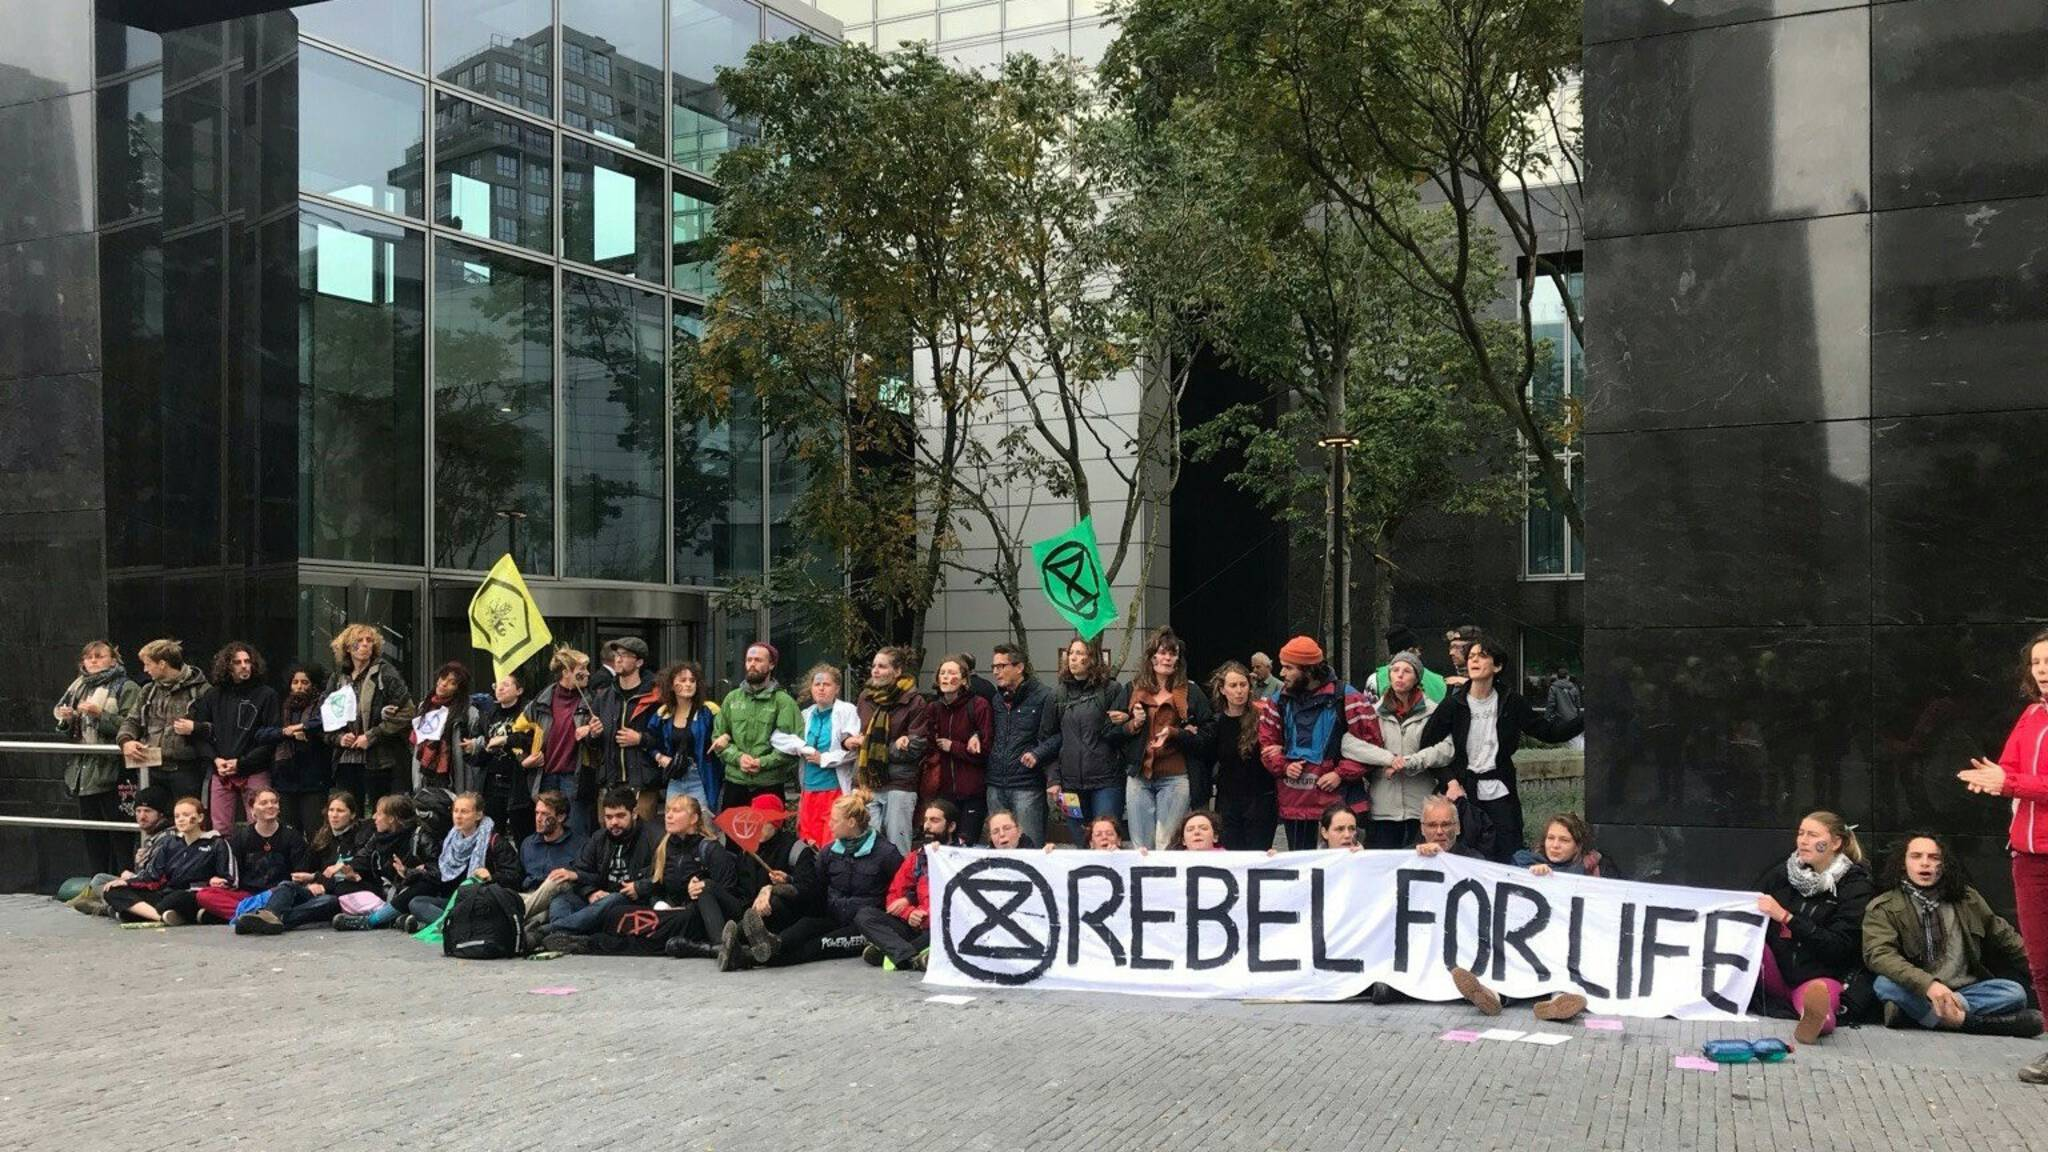 Extinction Rebellion protesters at the ABN AMRO office in Amsterdam, the Netherlands